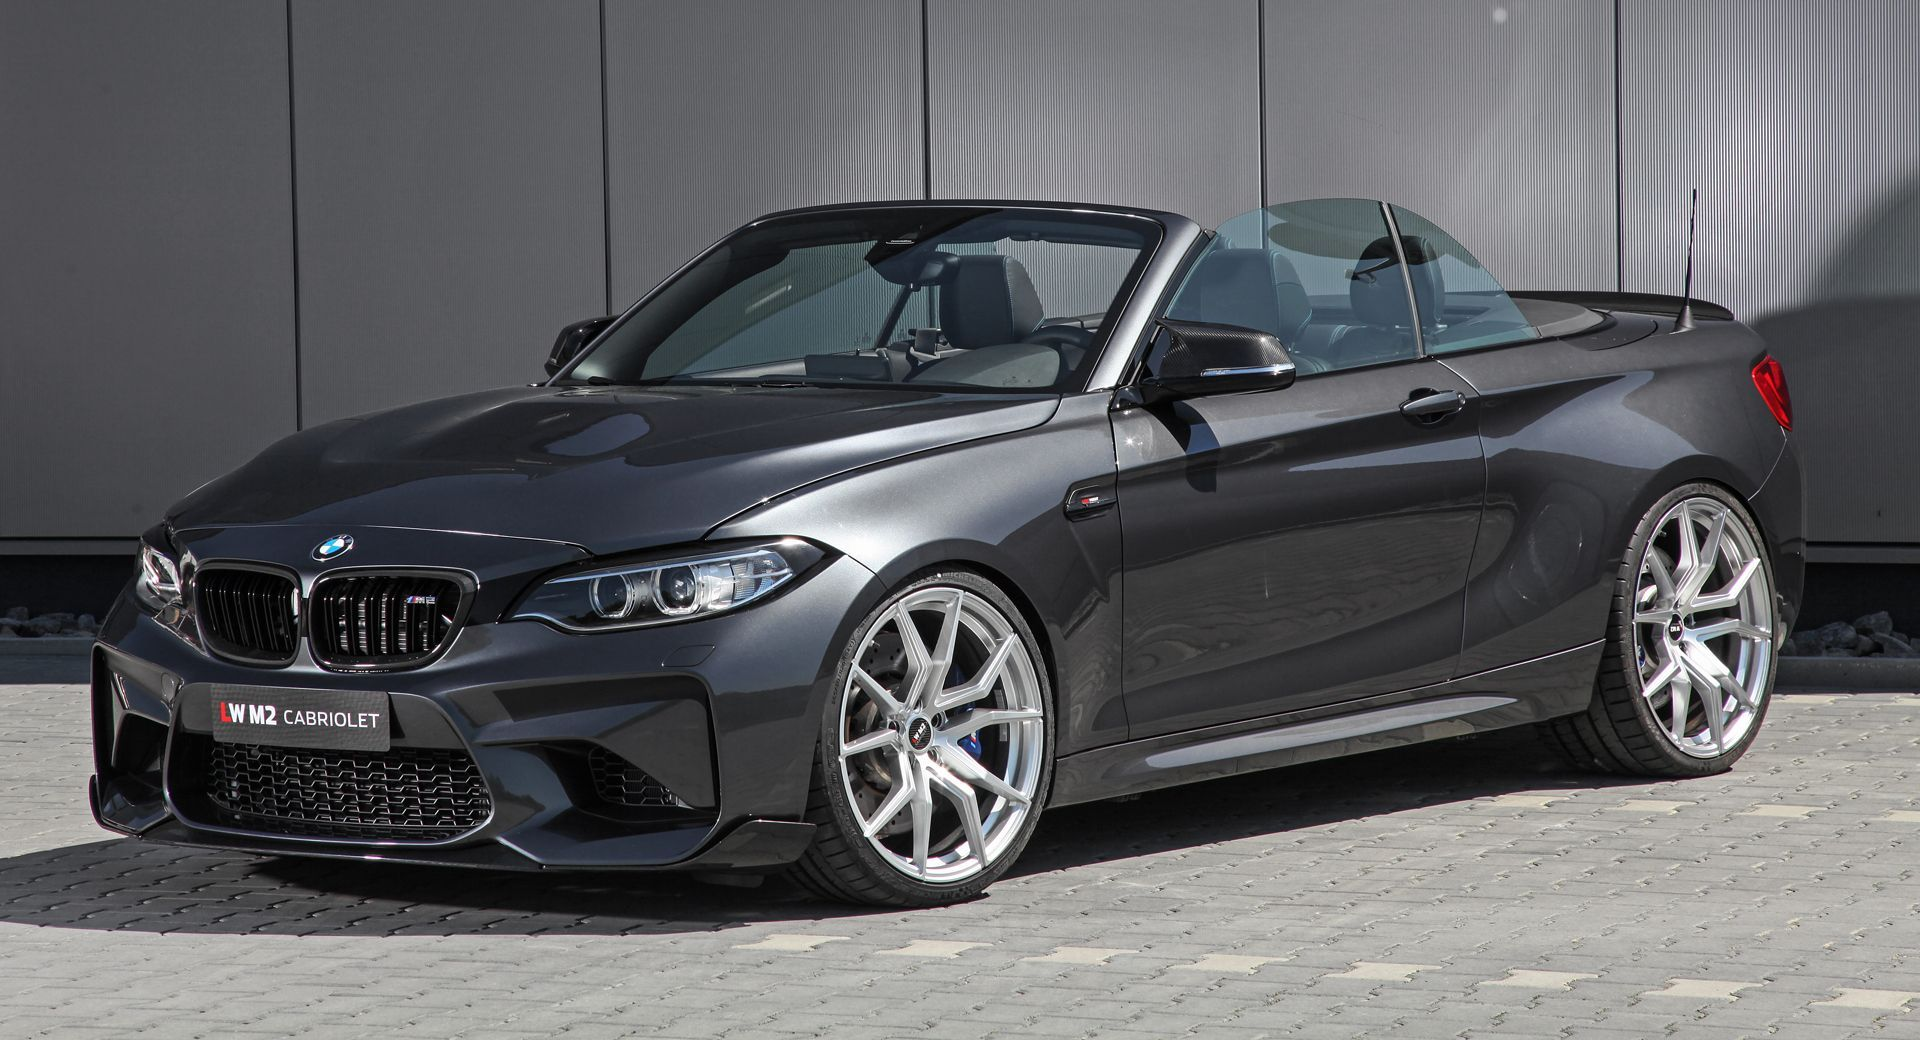 Tuner Will Build You A Bmw M2 Cabriolet For 90k Bmw M2 Bmw